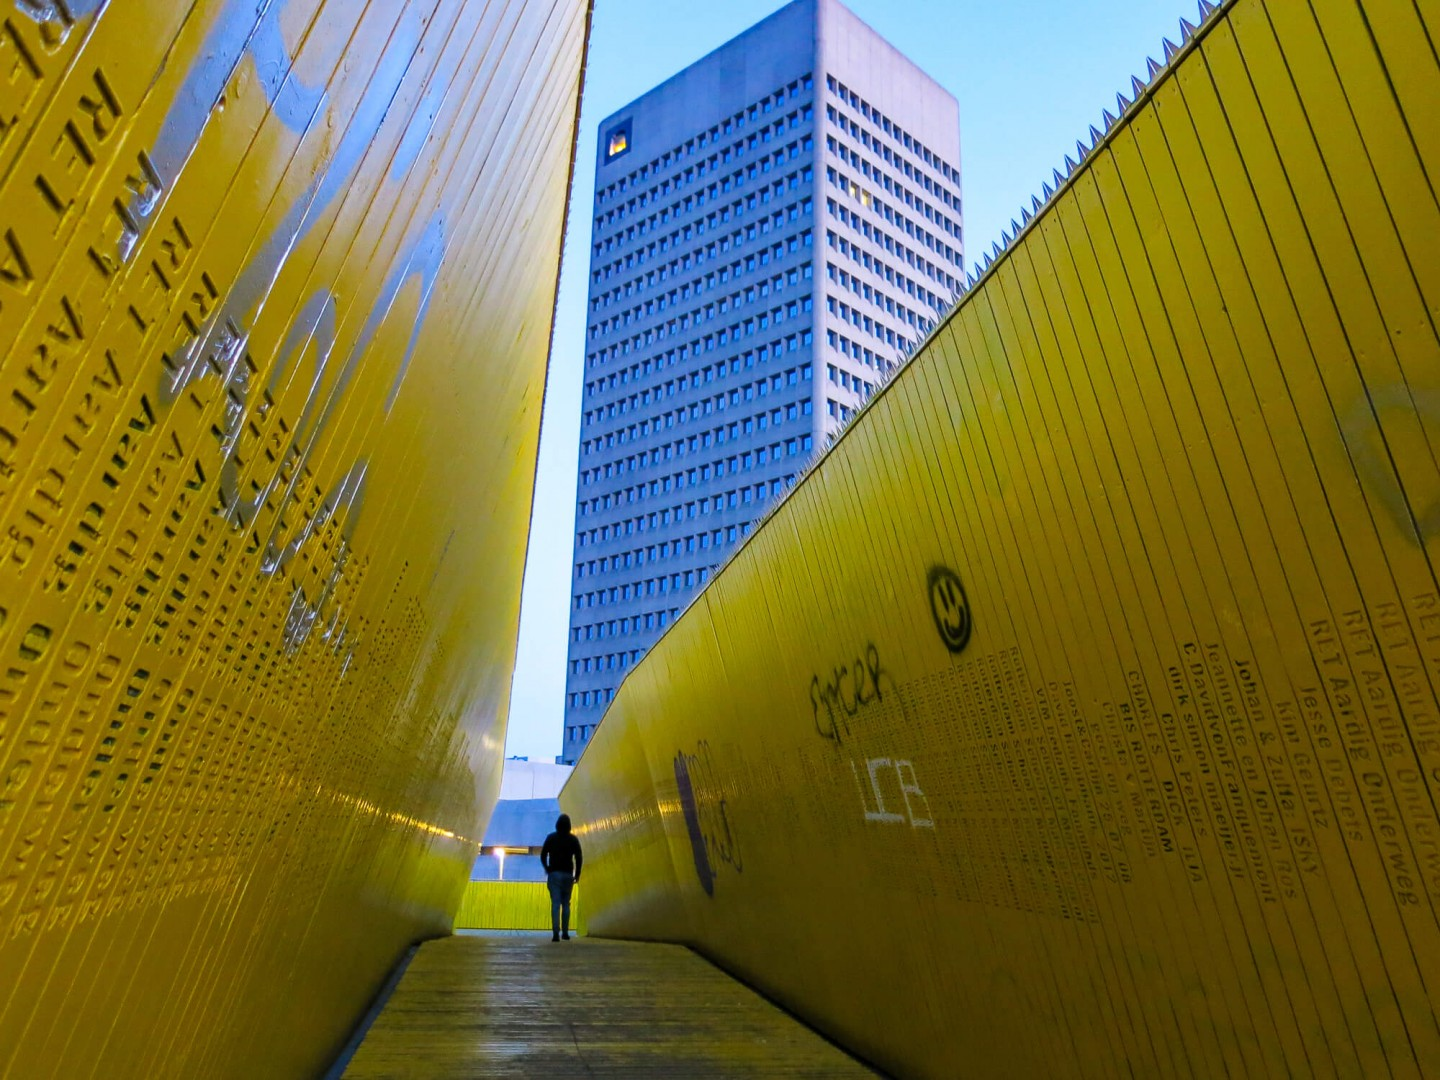 The Luchtsingel bridge in Rotterdam. The bright yellow wooden structure is a pedestrian pathway that connects Rotterdam Centraal station with the historic Laurenskwartier district.